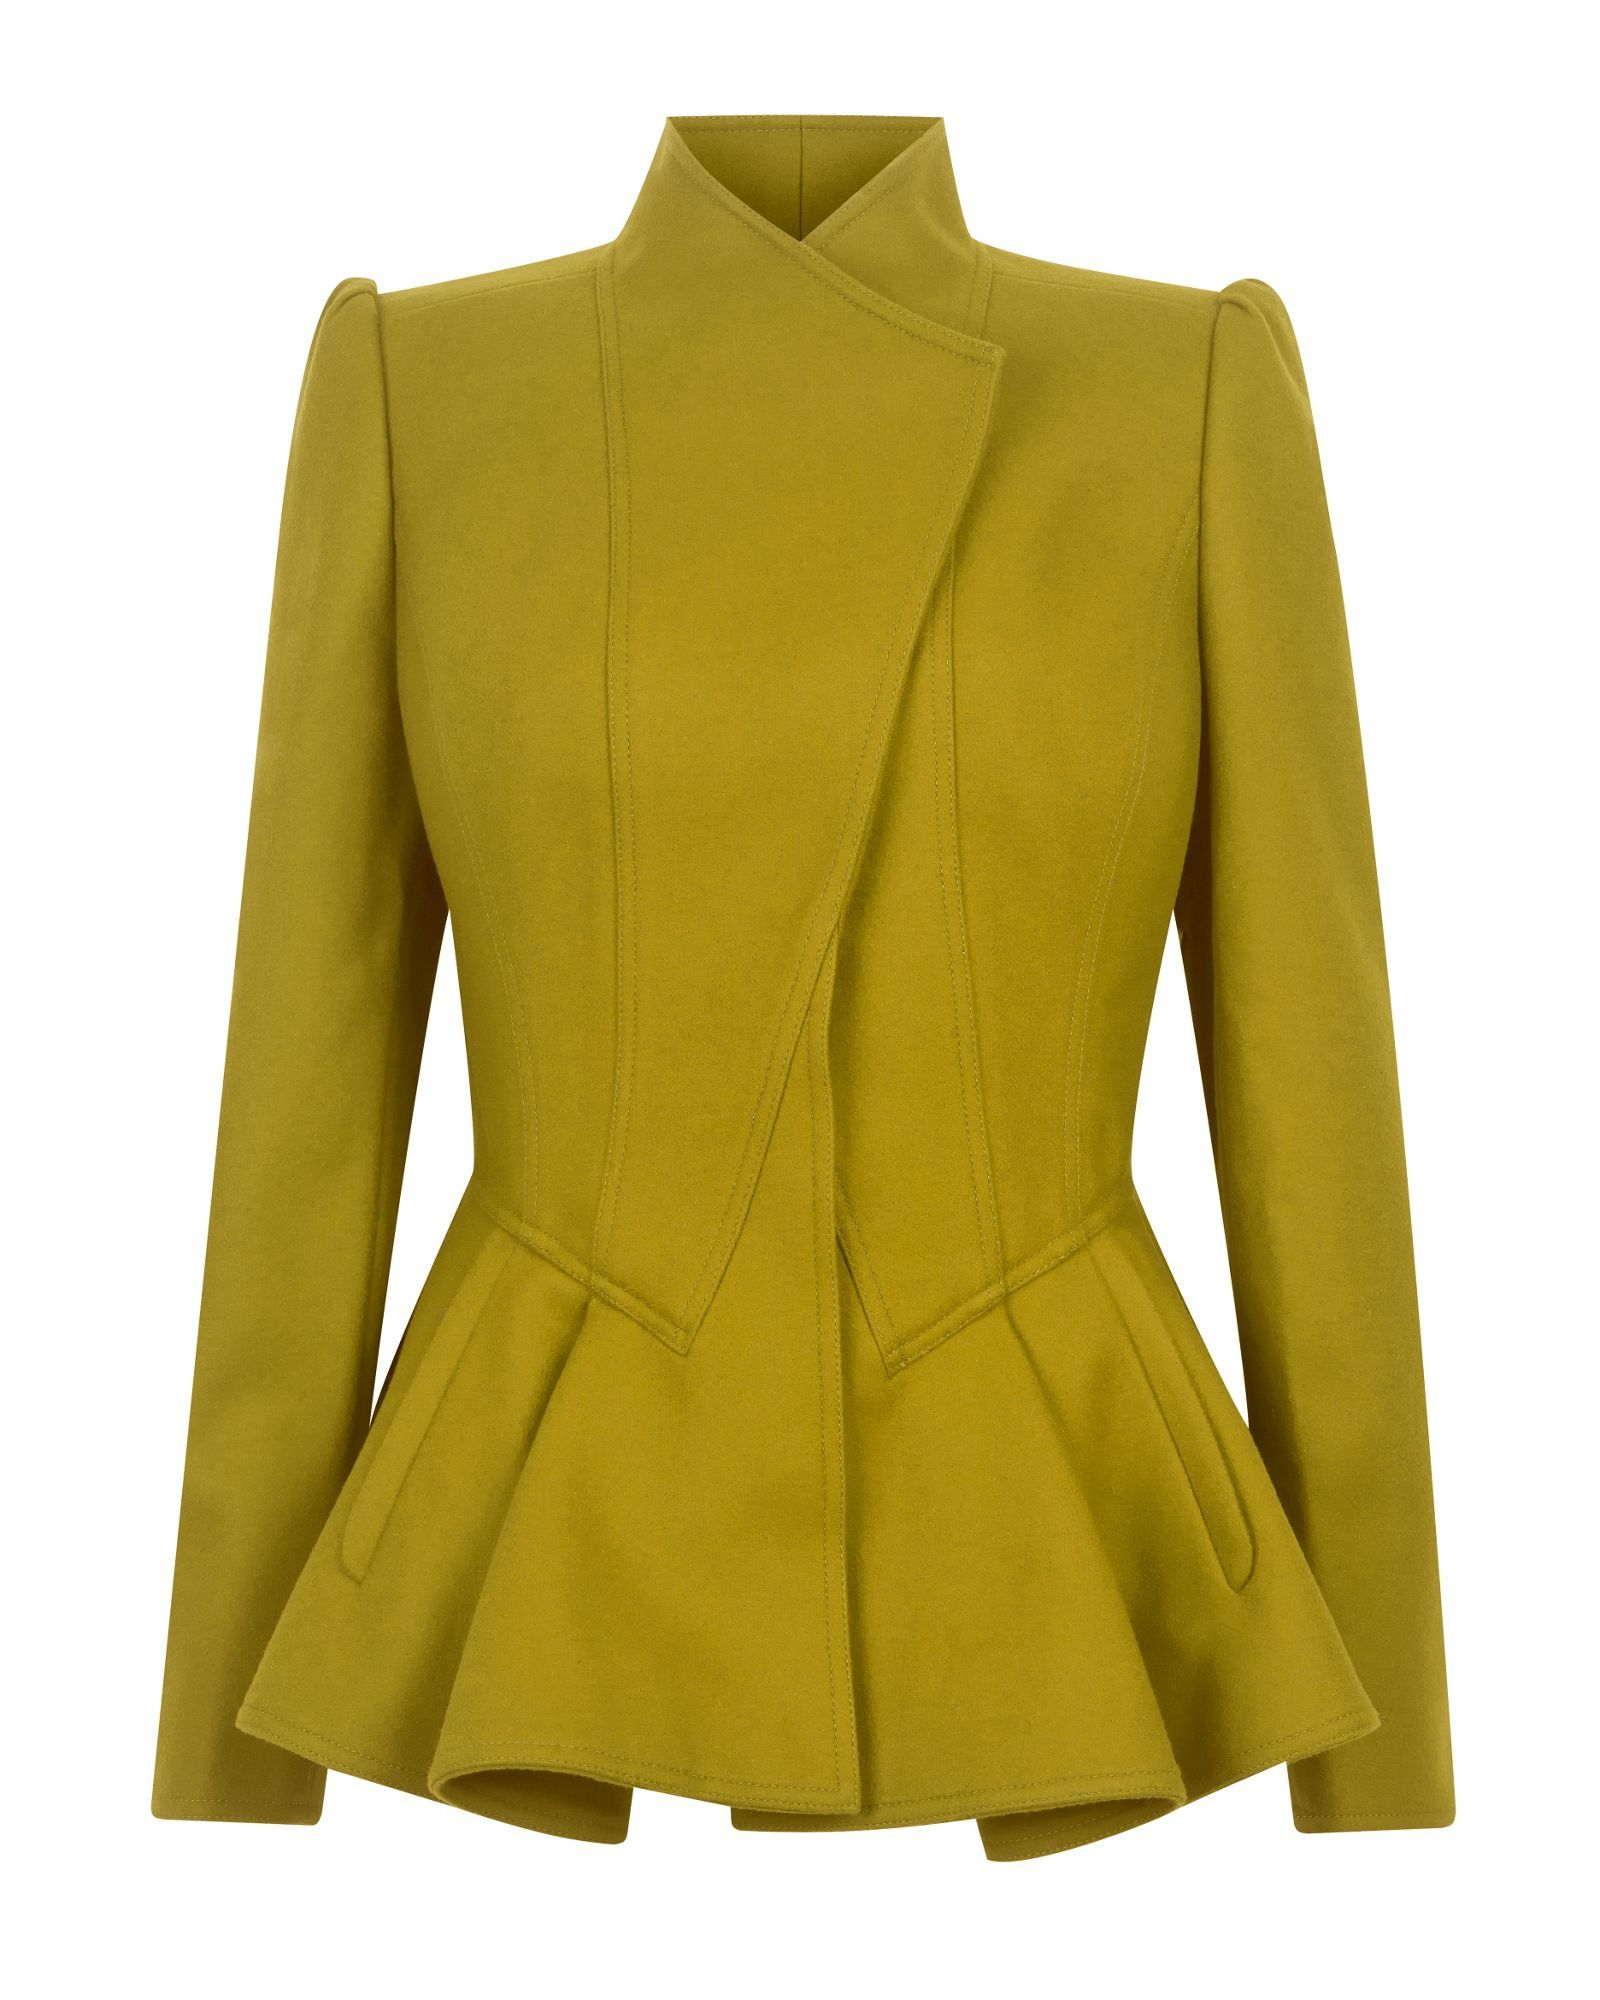 7ea4a876d73971 Ted baker Wrenn Wool Peplum Jacket in Green